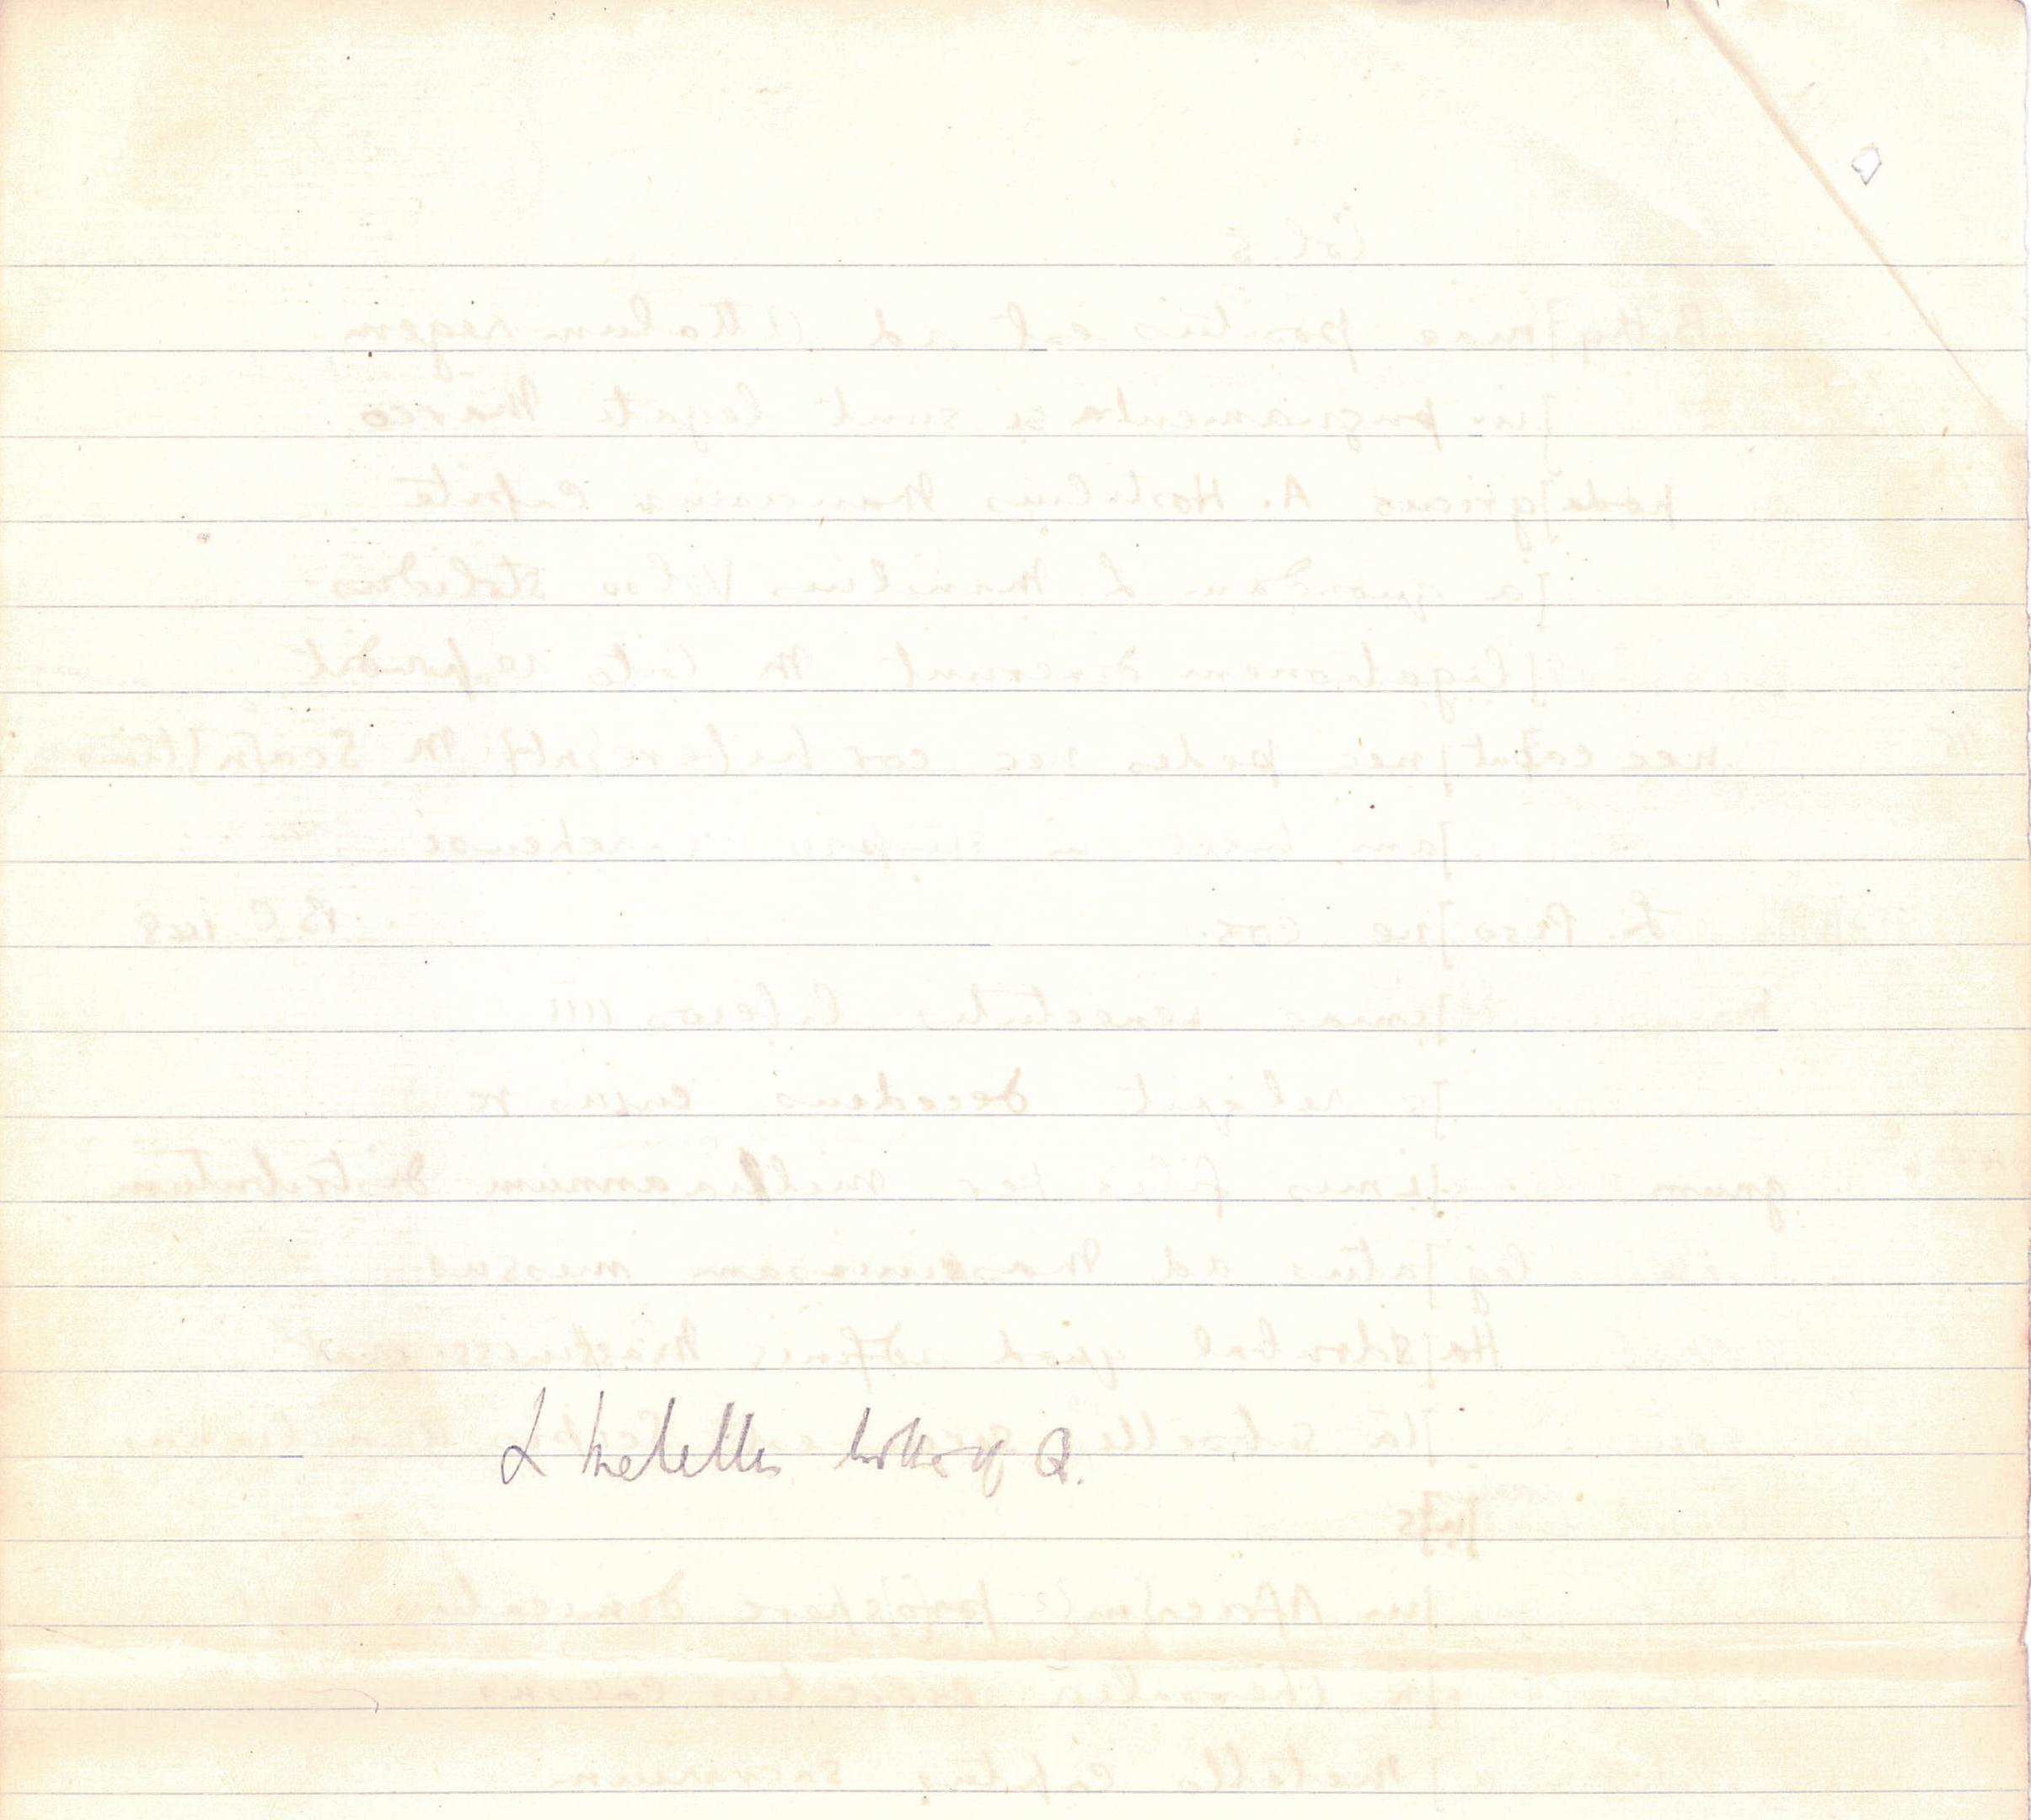 1908-09 A.S. Hunt, letters re papyri from continental scholars DIST.30.06g